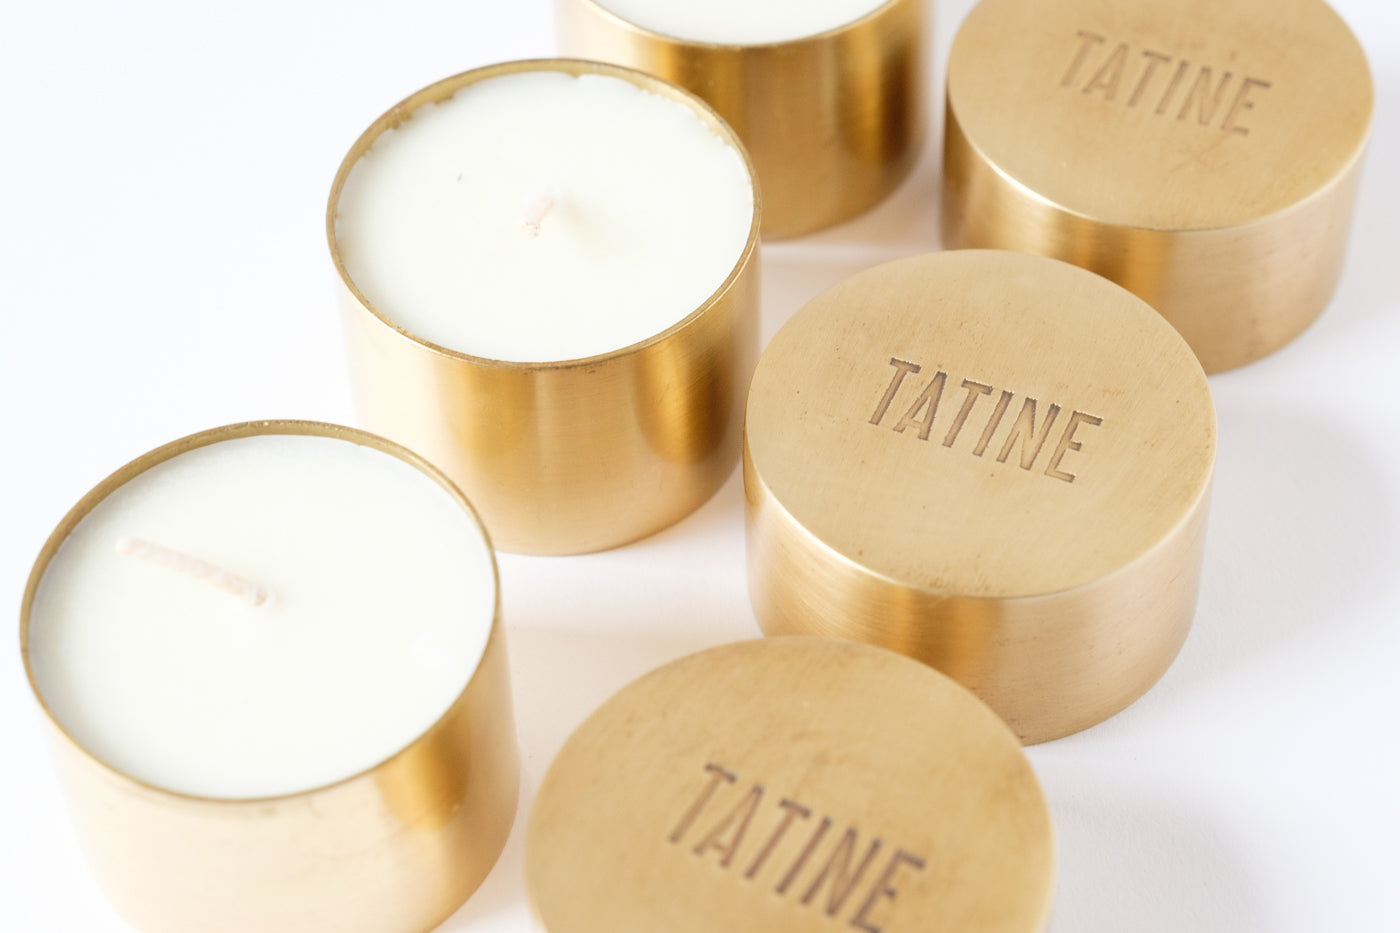 Tatine Candles - Élan Flowers